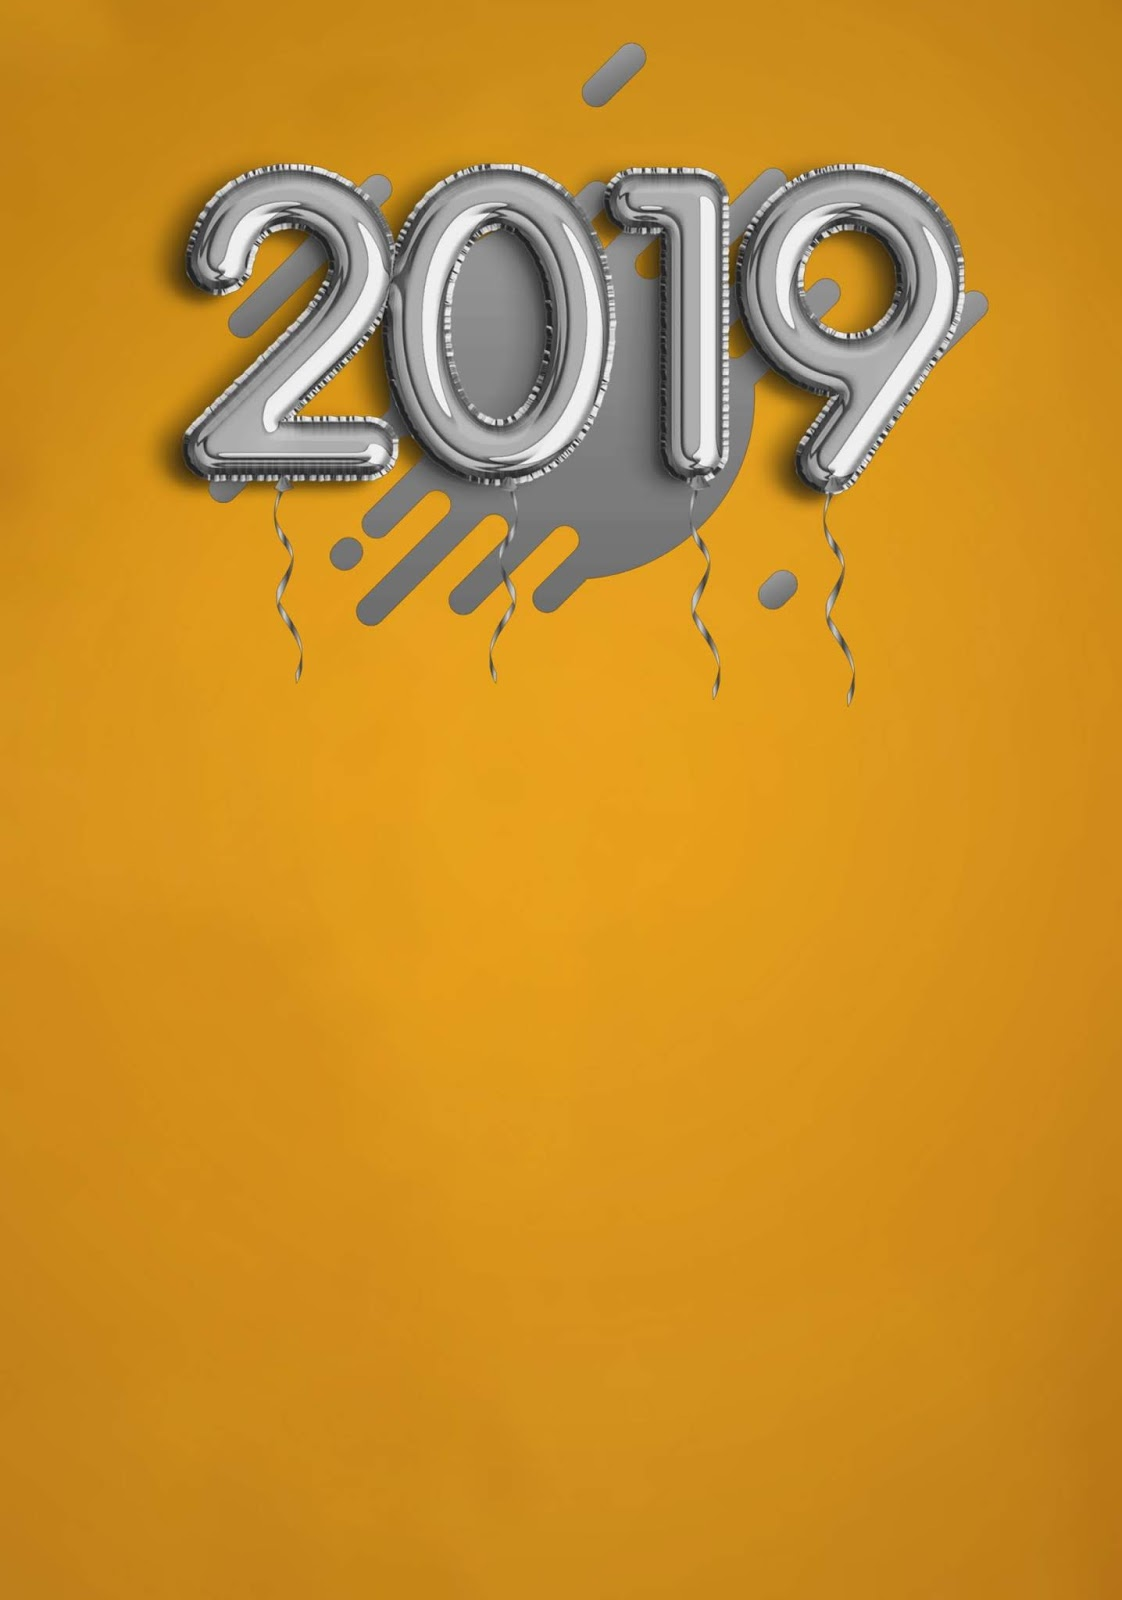 Happy New Year Editing Background 55